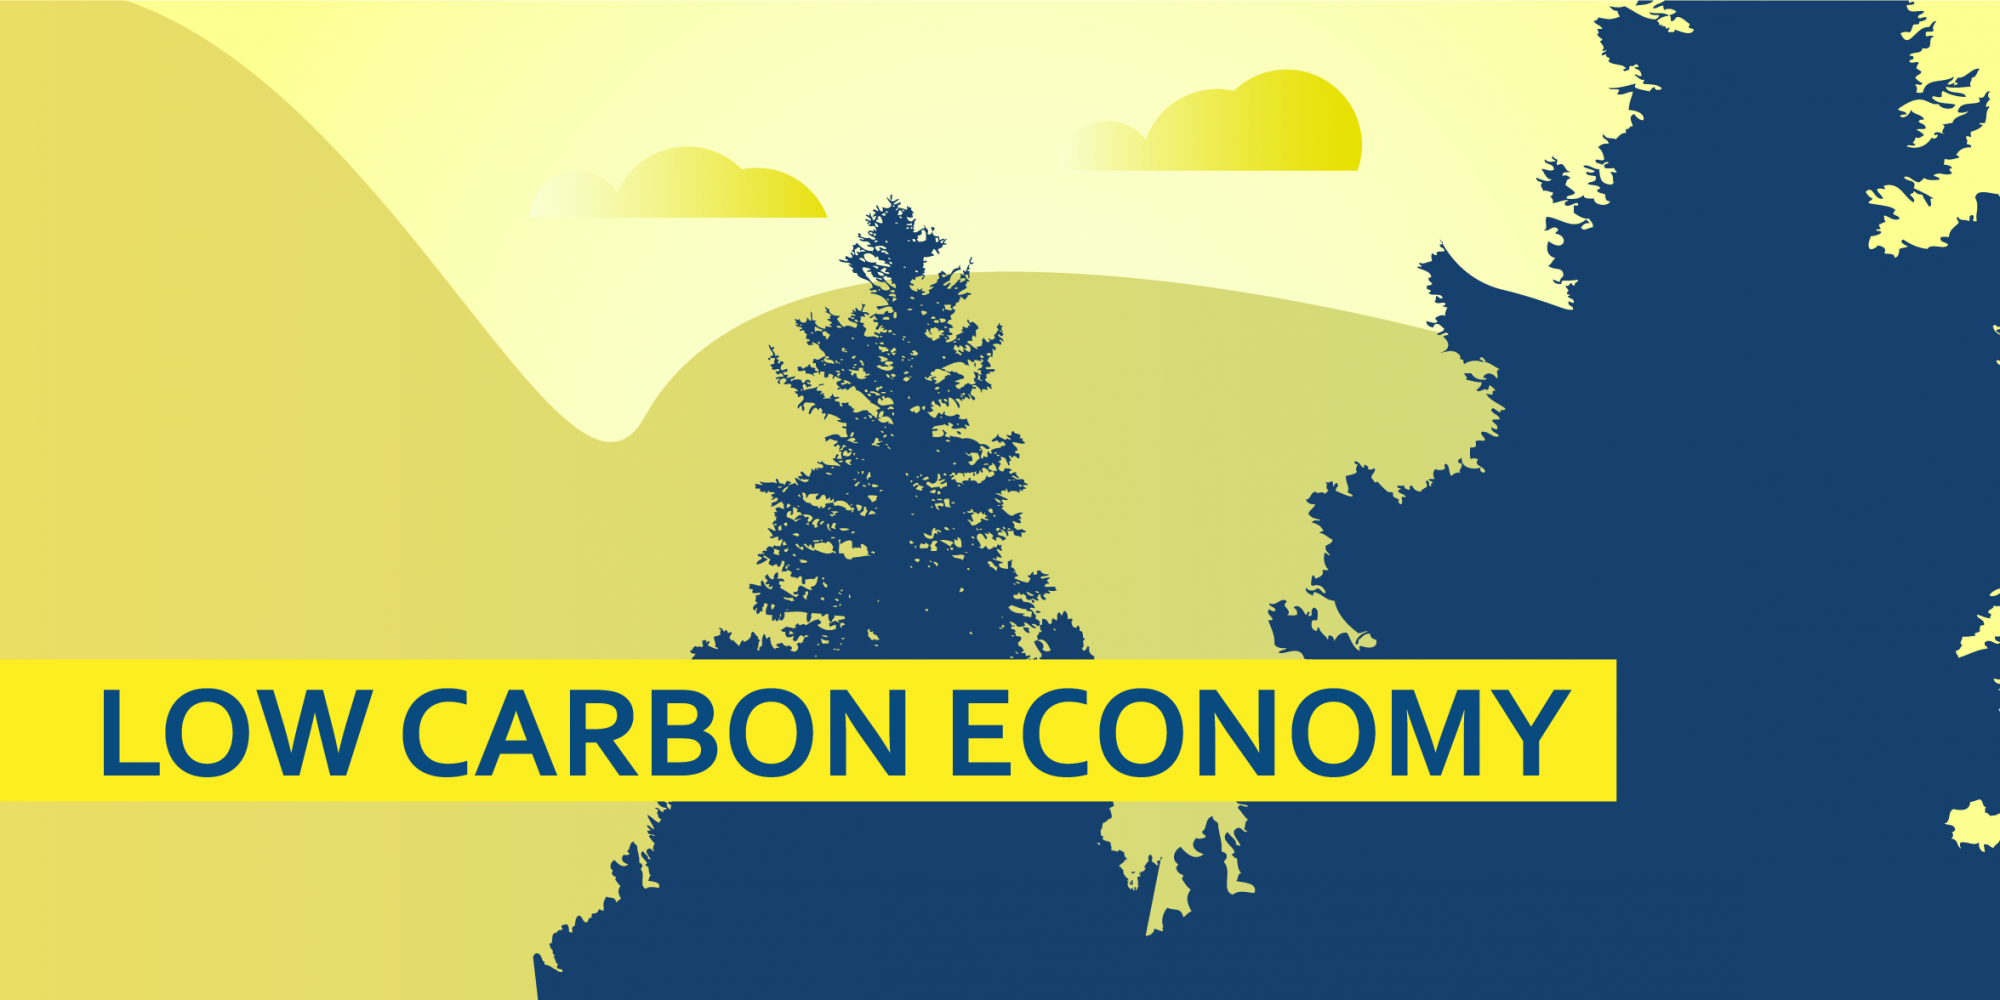 Slovenia fully supportive of the transition to a low-carbon society